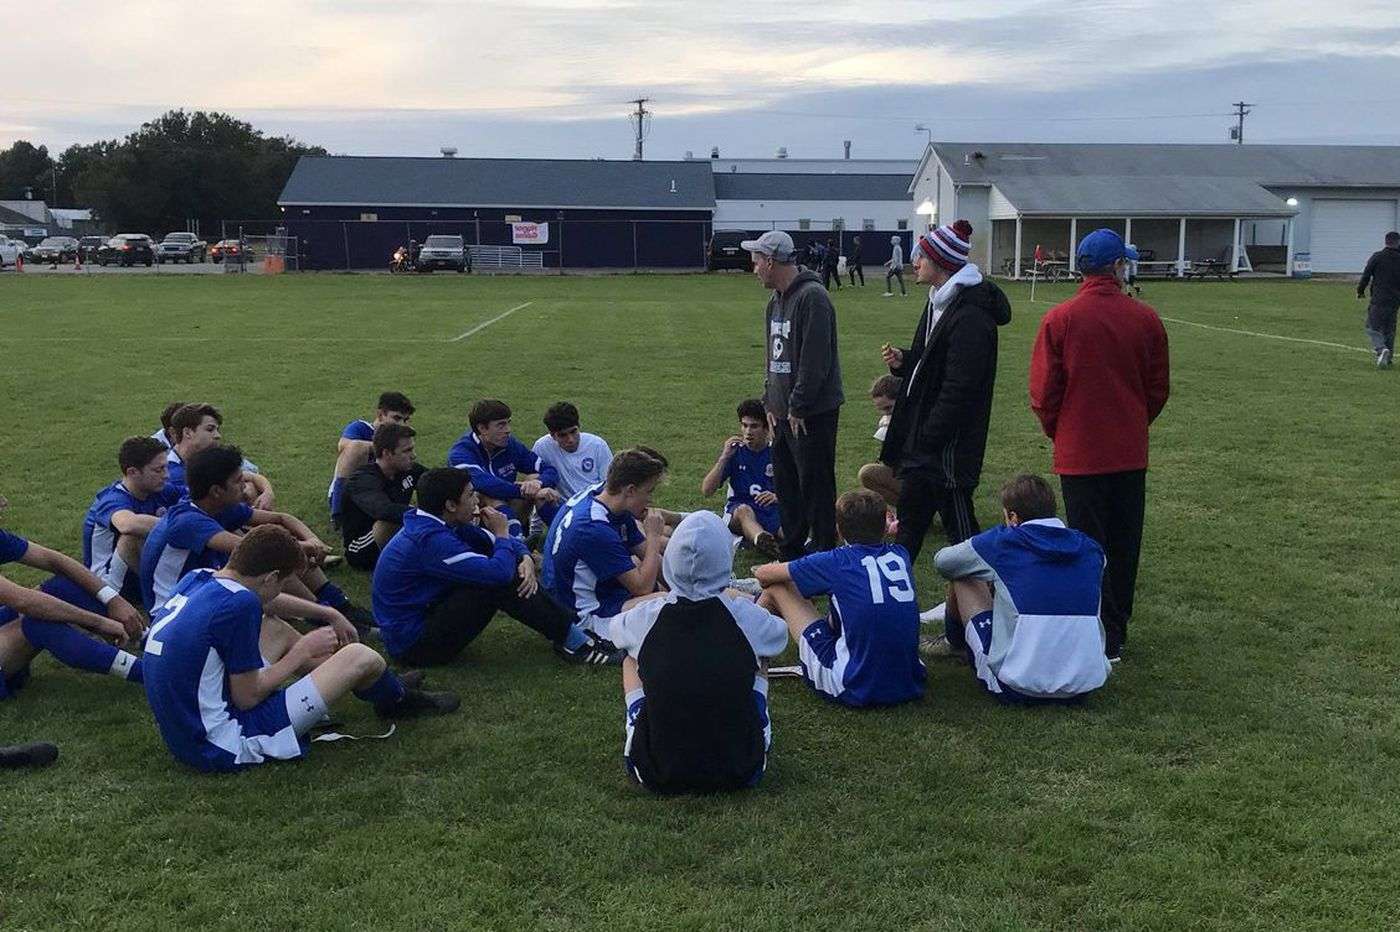 Friday's South Jersey roundup: Matt Liss scores in OT to advance Washington Township in SJSCA Tournament